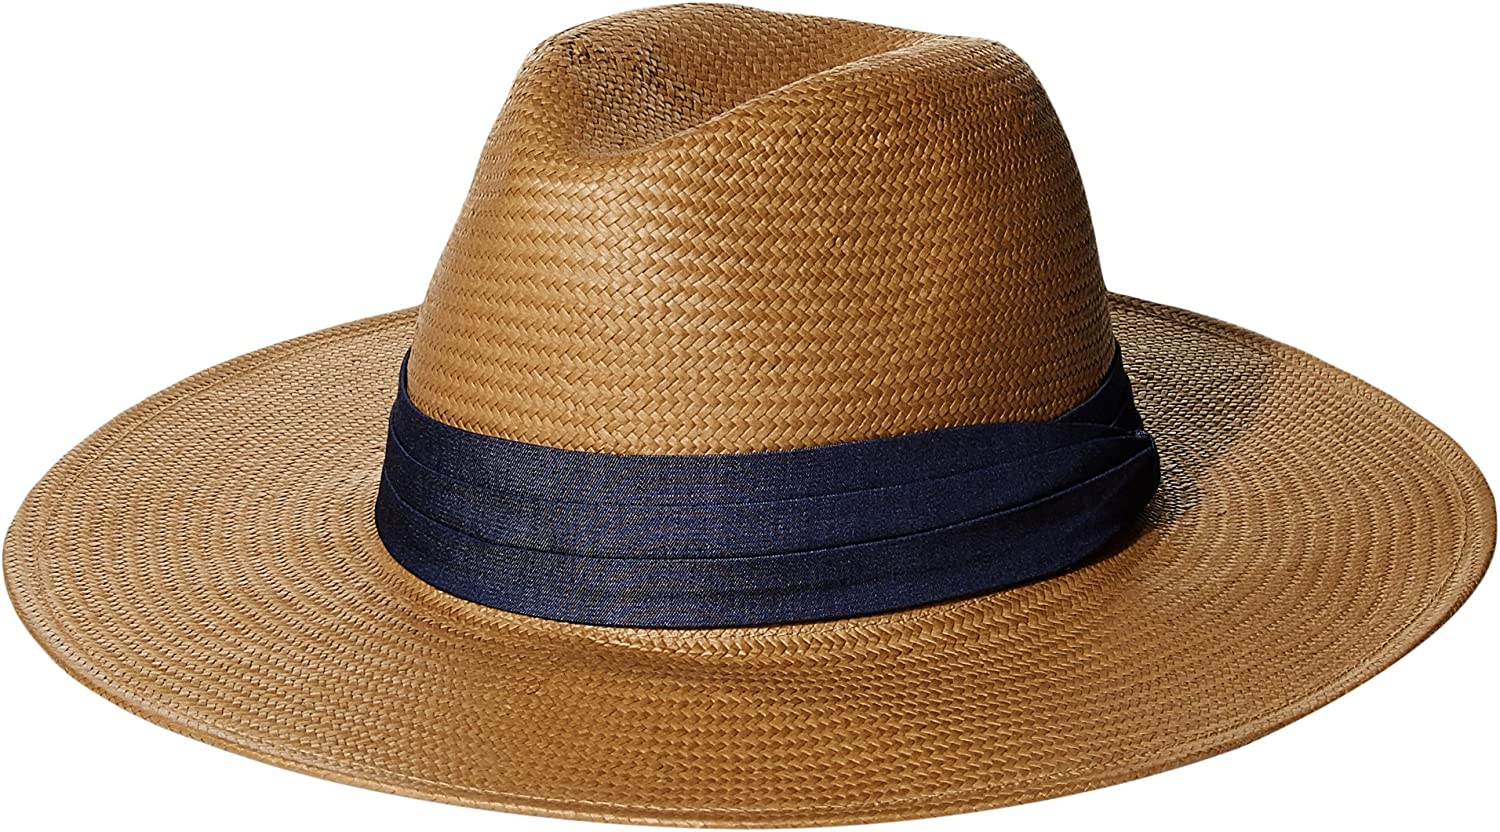 'ale by alessandra Havana Panama Sunhat Packable, Adjustable UPF Rated